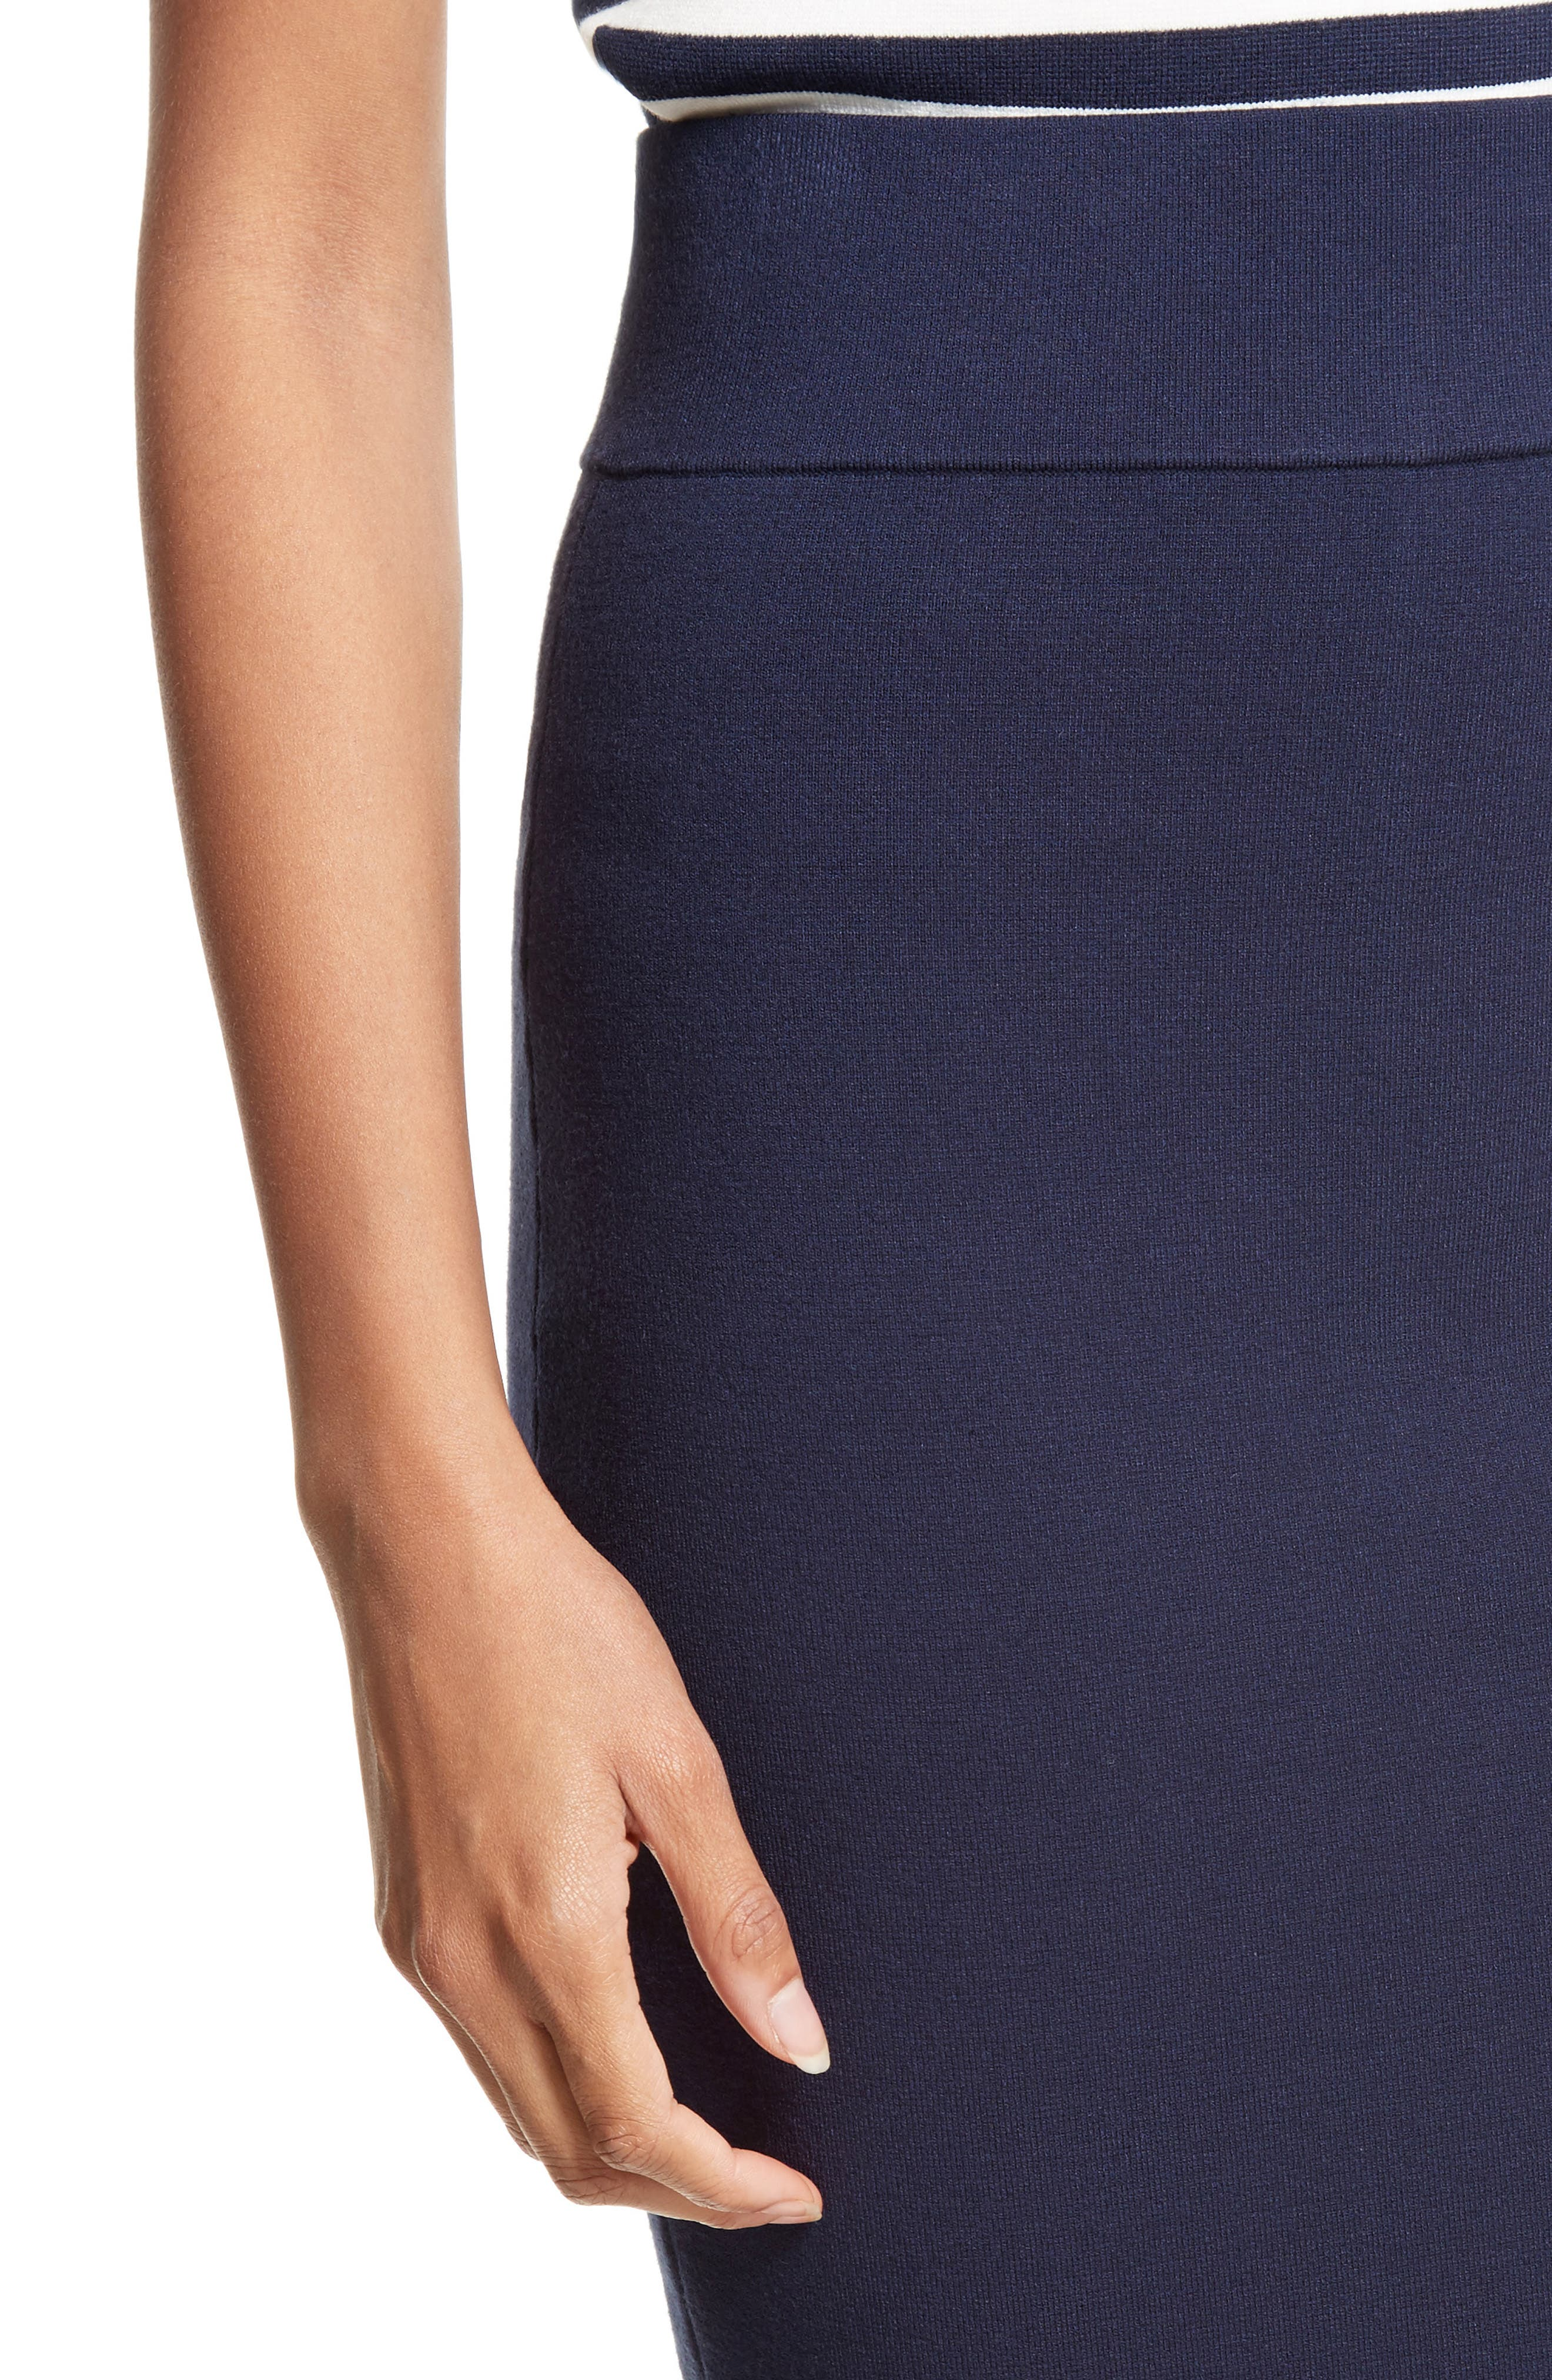 Stretch Knit Pencil Skirt,                             Alternate thumbnail 4, color,                             410